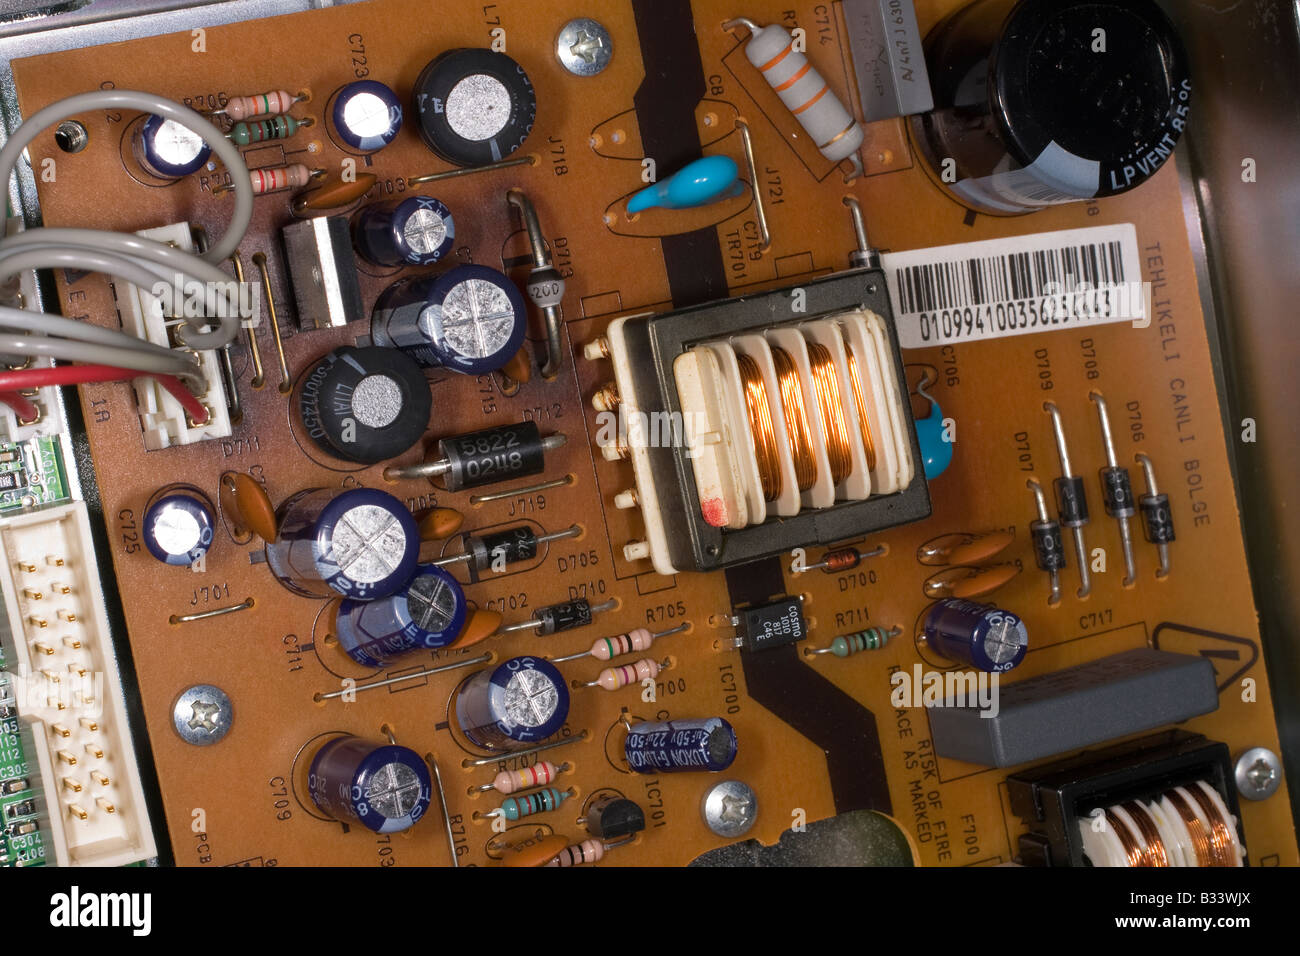 electronic circuit board showing several types of component from tvelectronic circuit board showing several types of component from tv freeview box